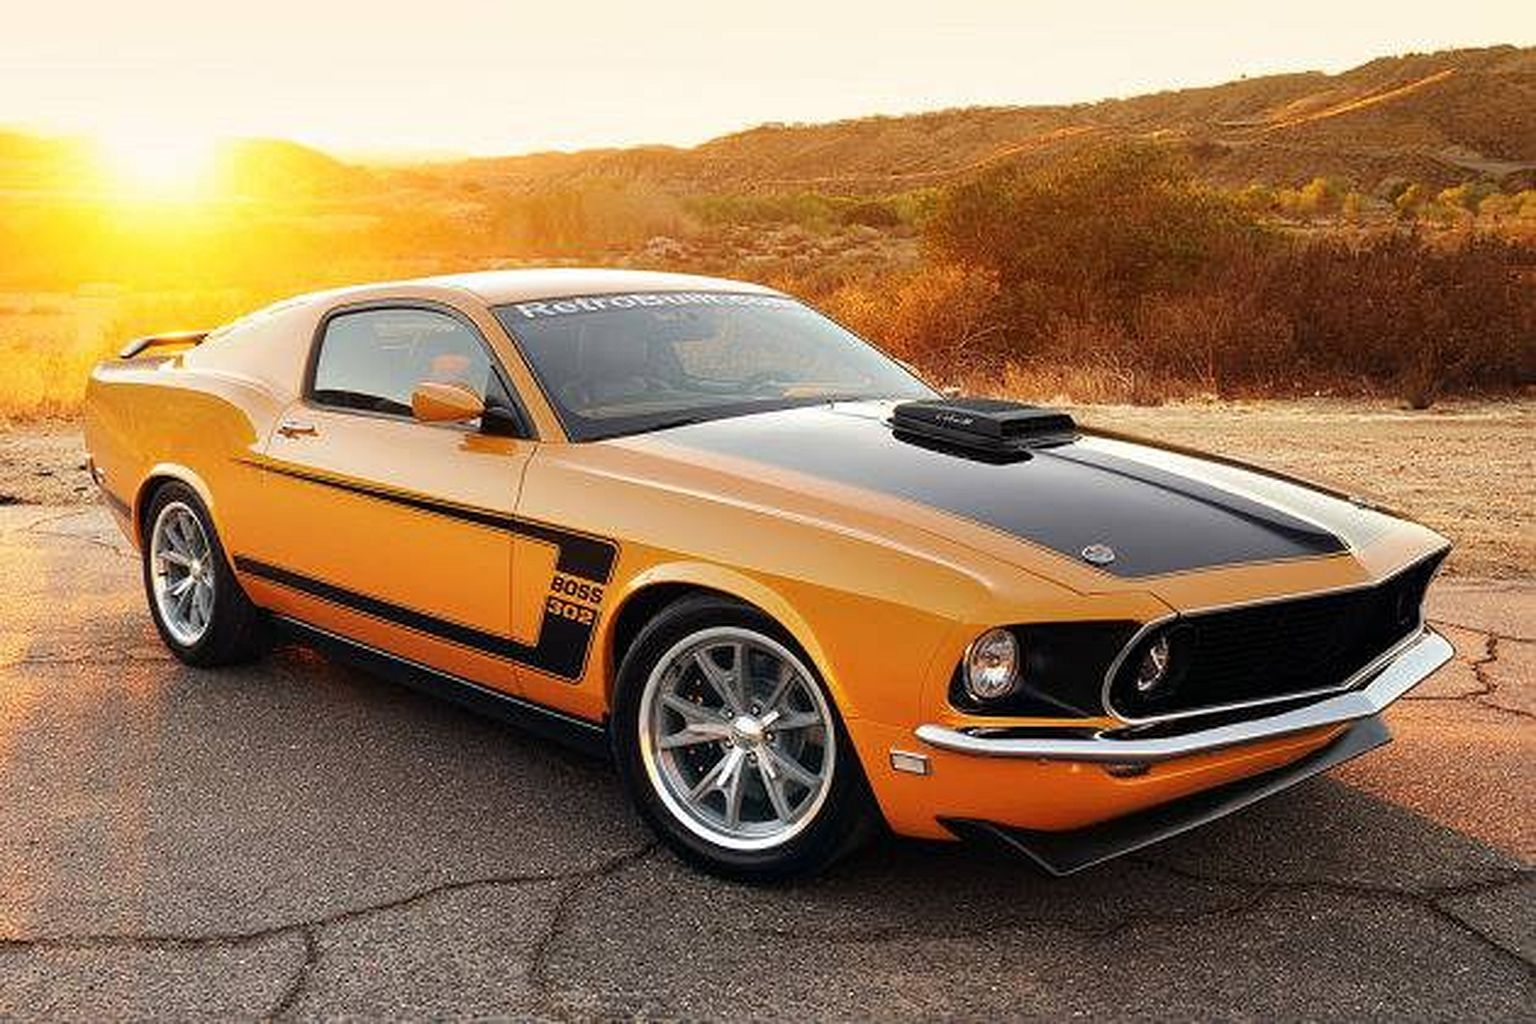 Photos Ford Mustang All Types Awesome | Ford mustang, Mustang and Ford